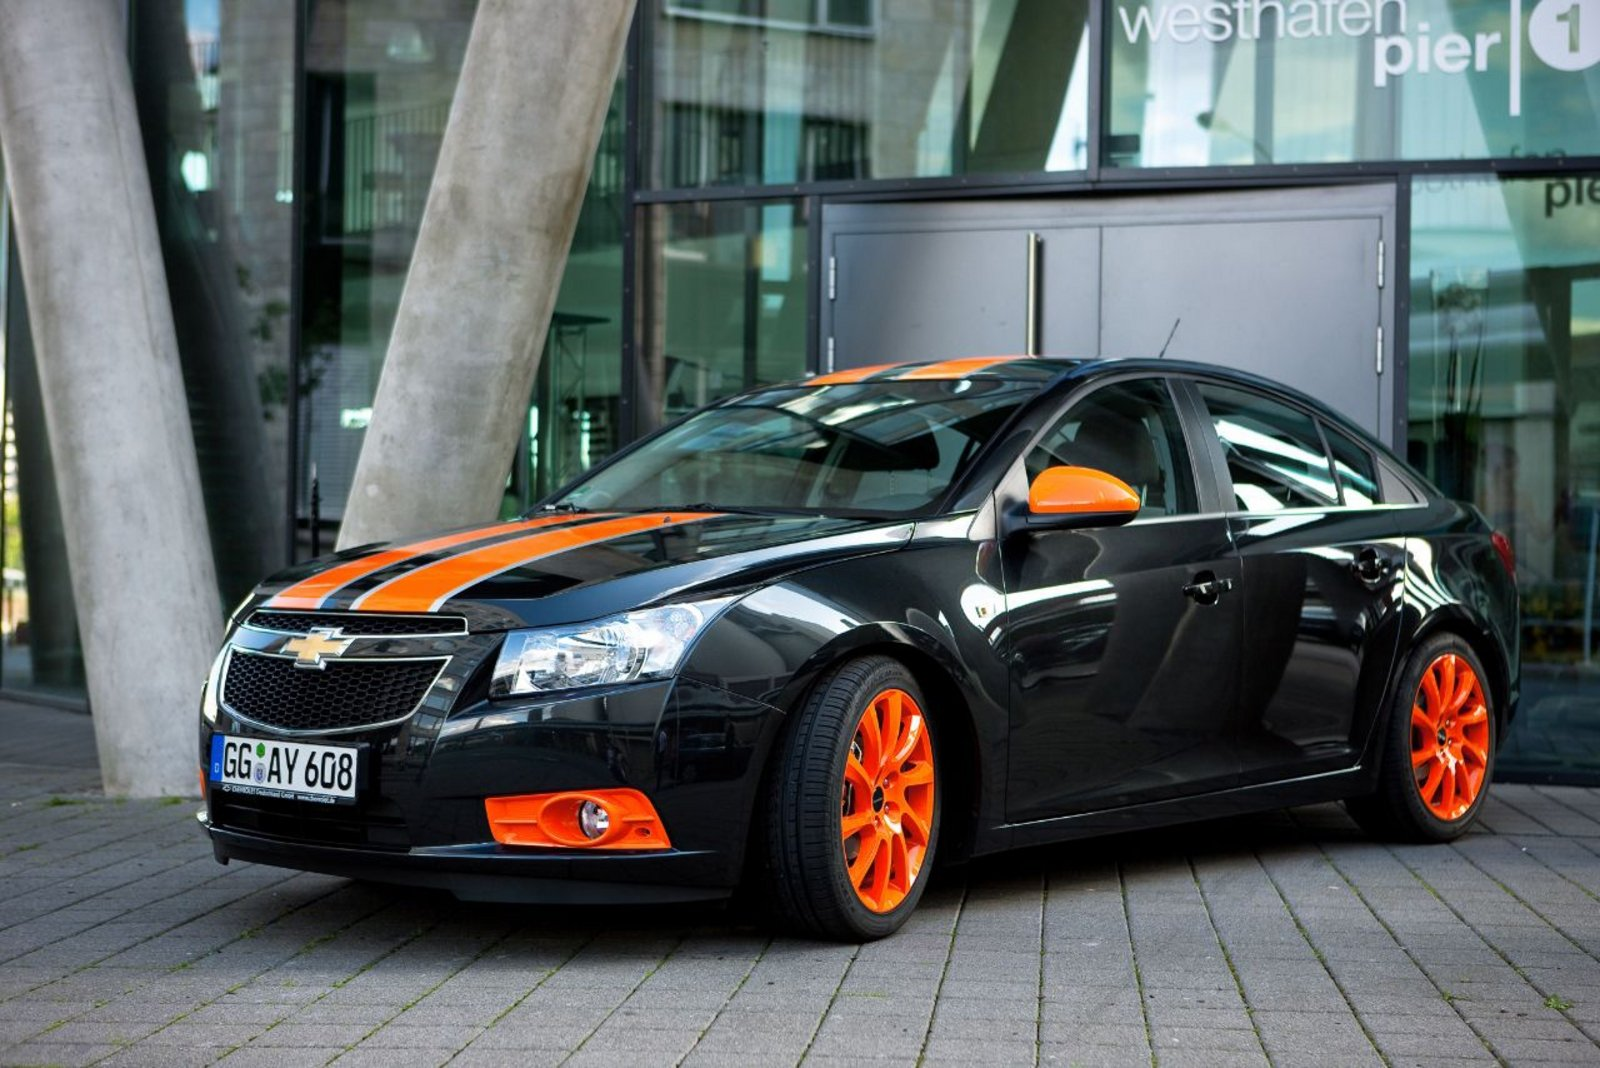 2009 Chevrolet Cruze Bumblebee By Irmscher Review - Top Speed